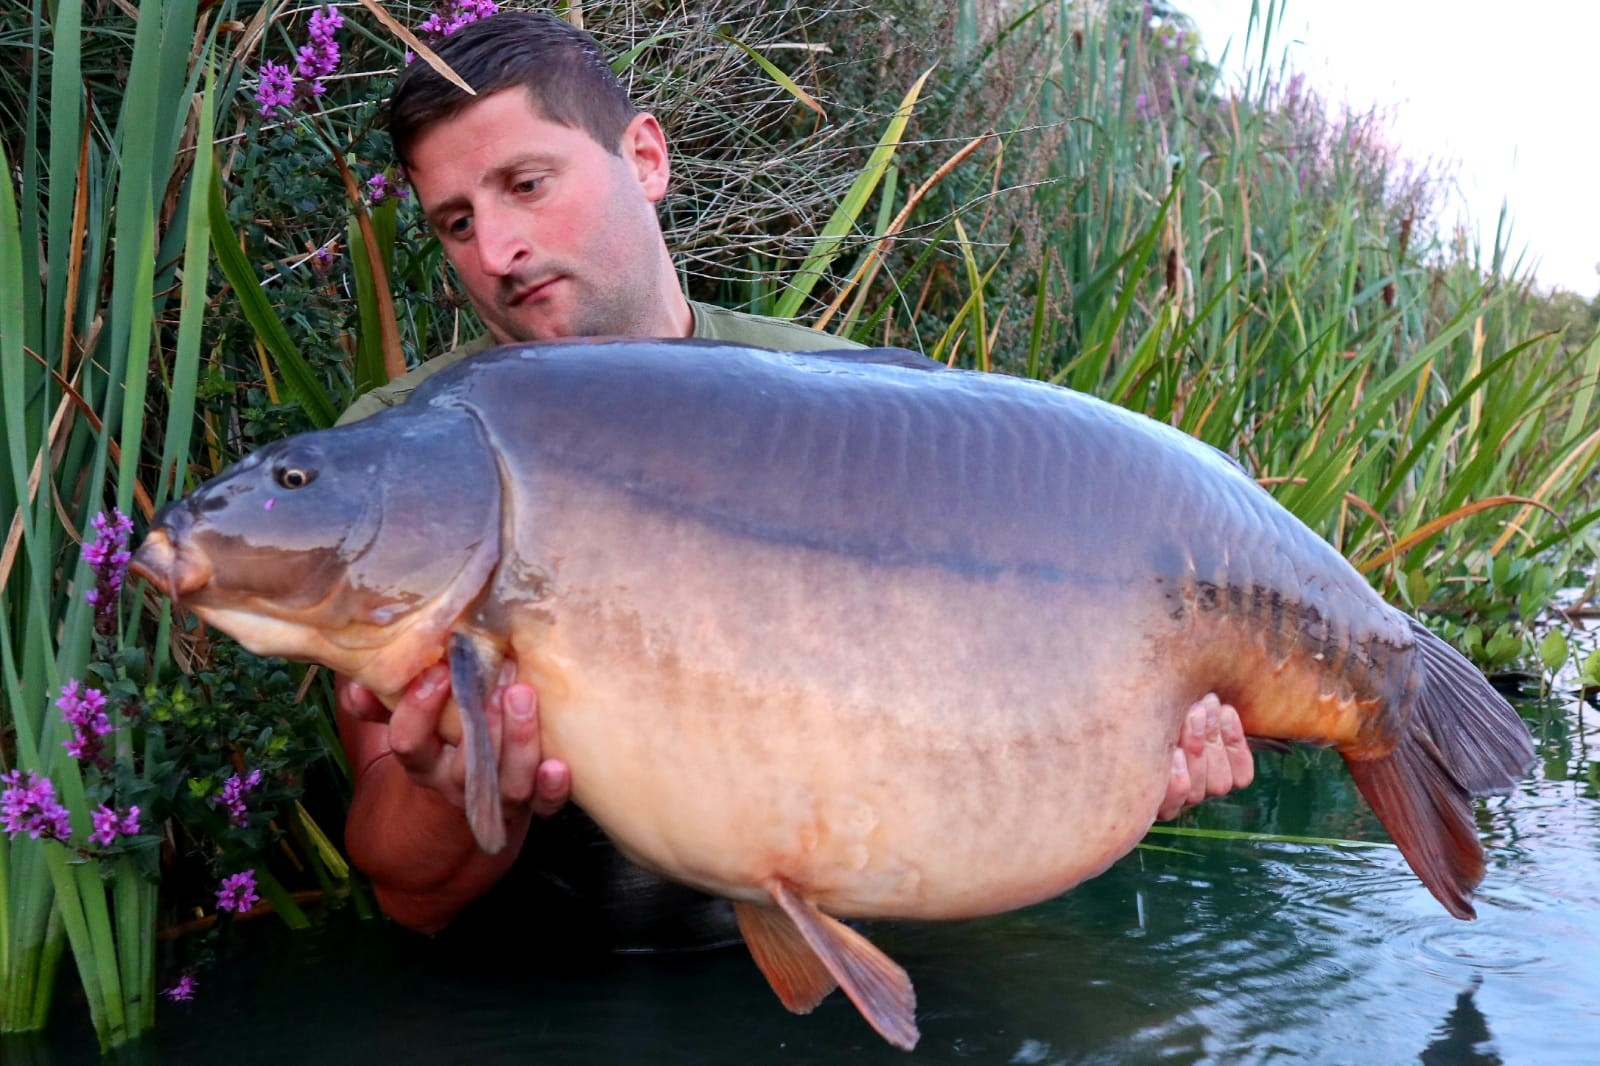 53lb 10oz 'Zac' caught on